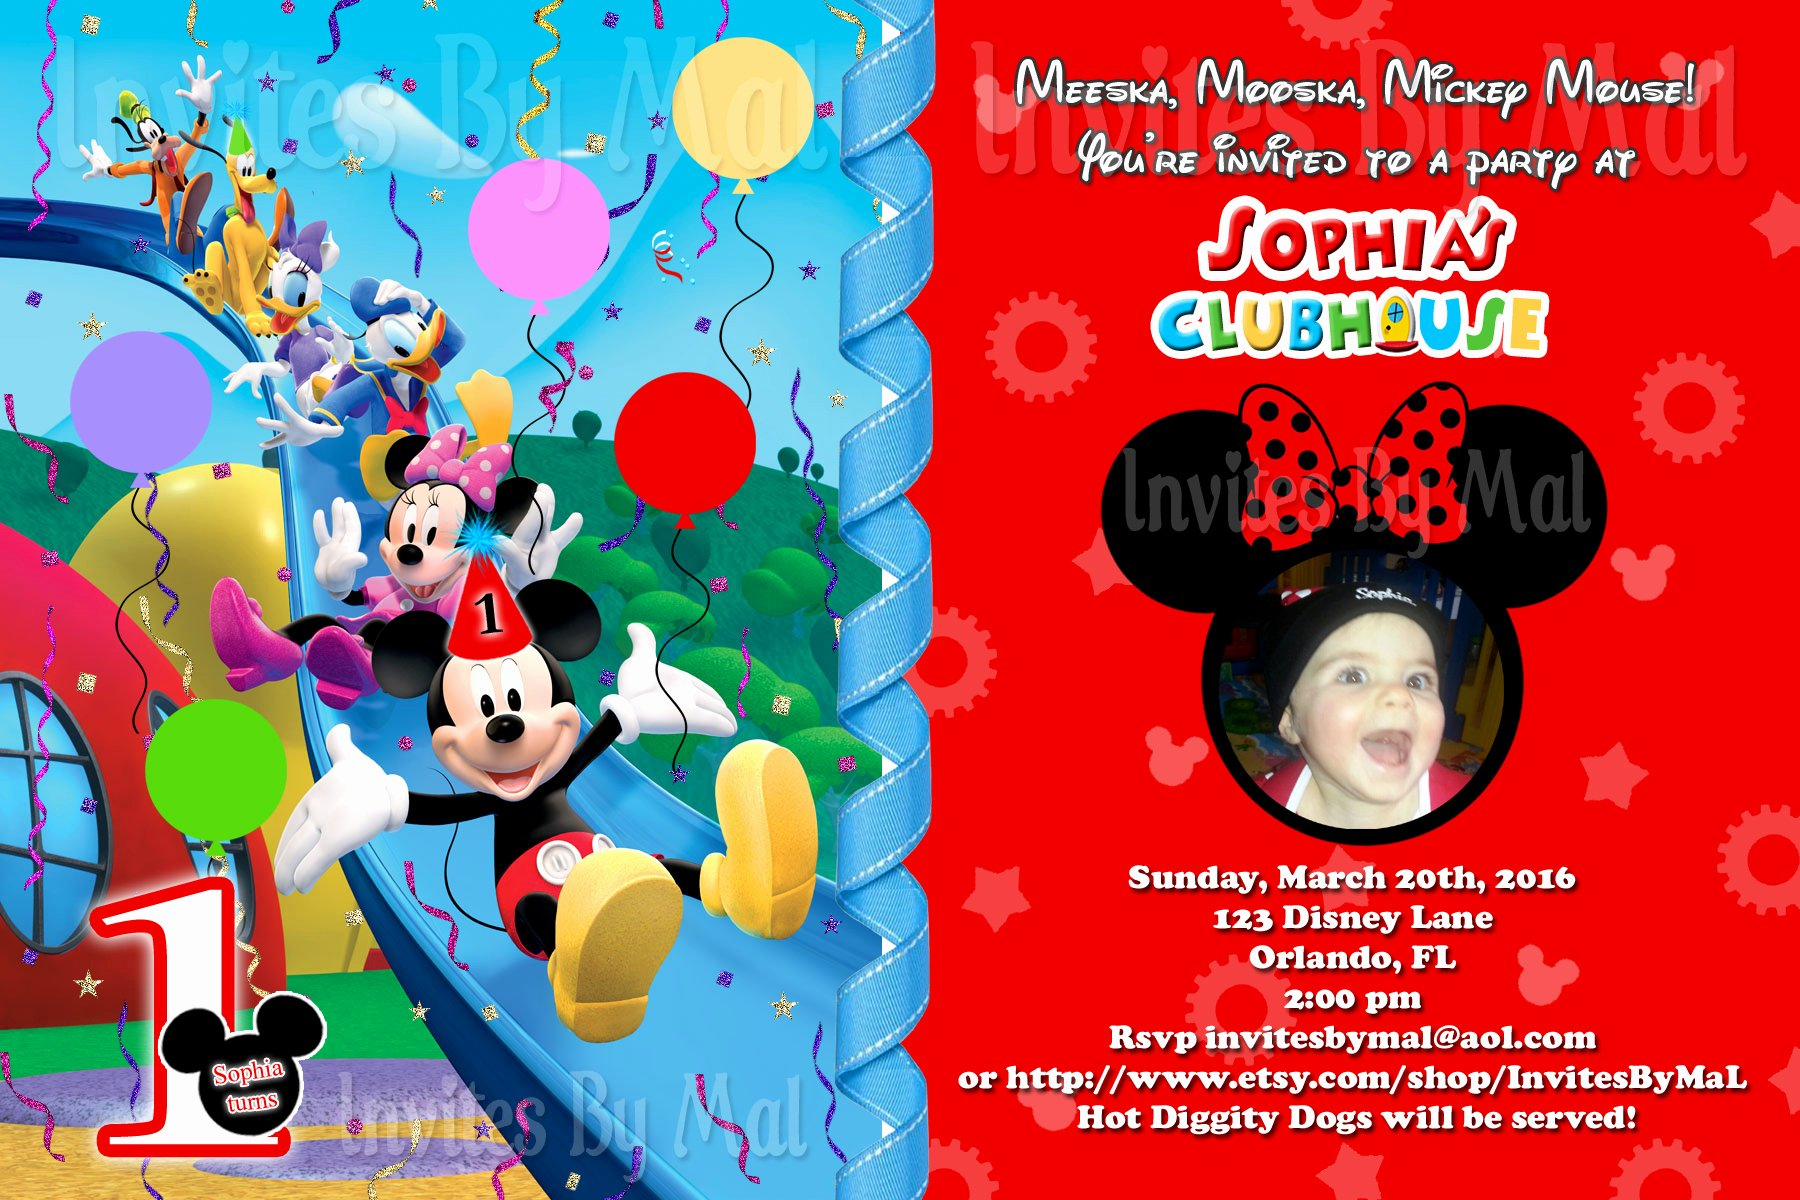 Free Mickey Mouse Invitations New Mickey Mouse 1st Birthday Invitations Free Invitation